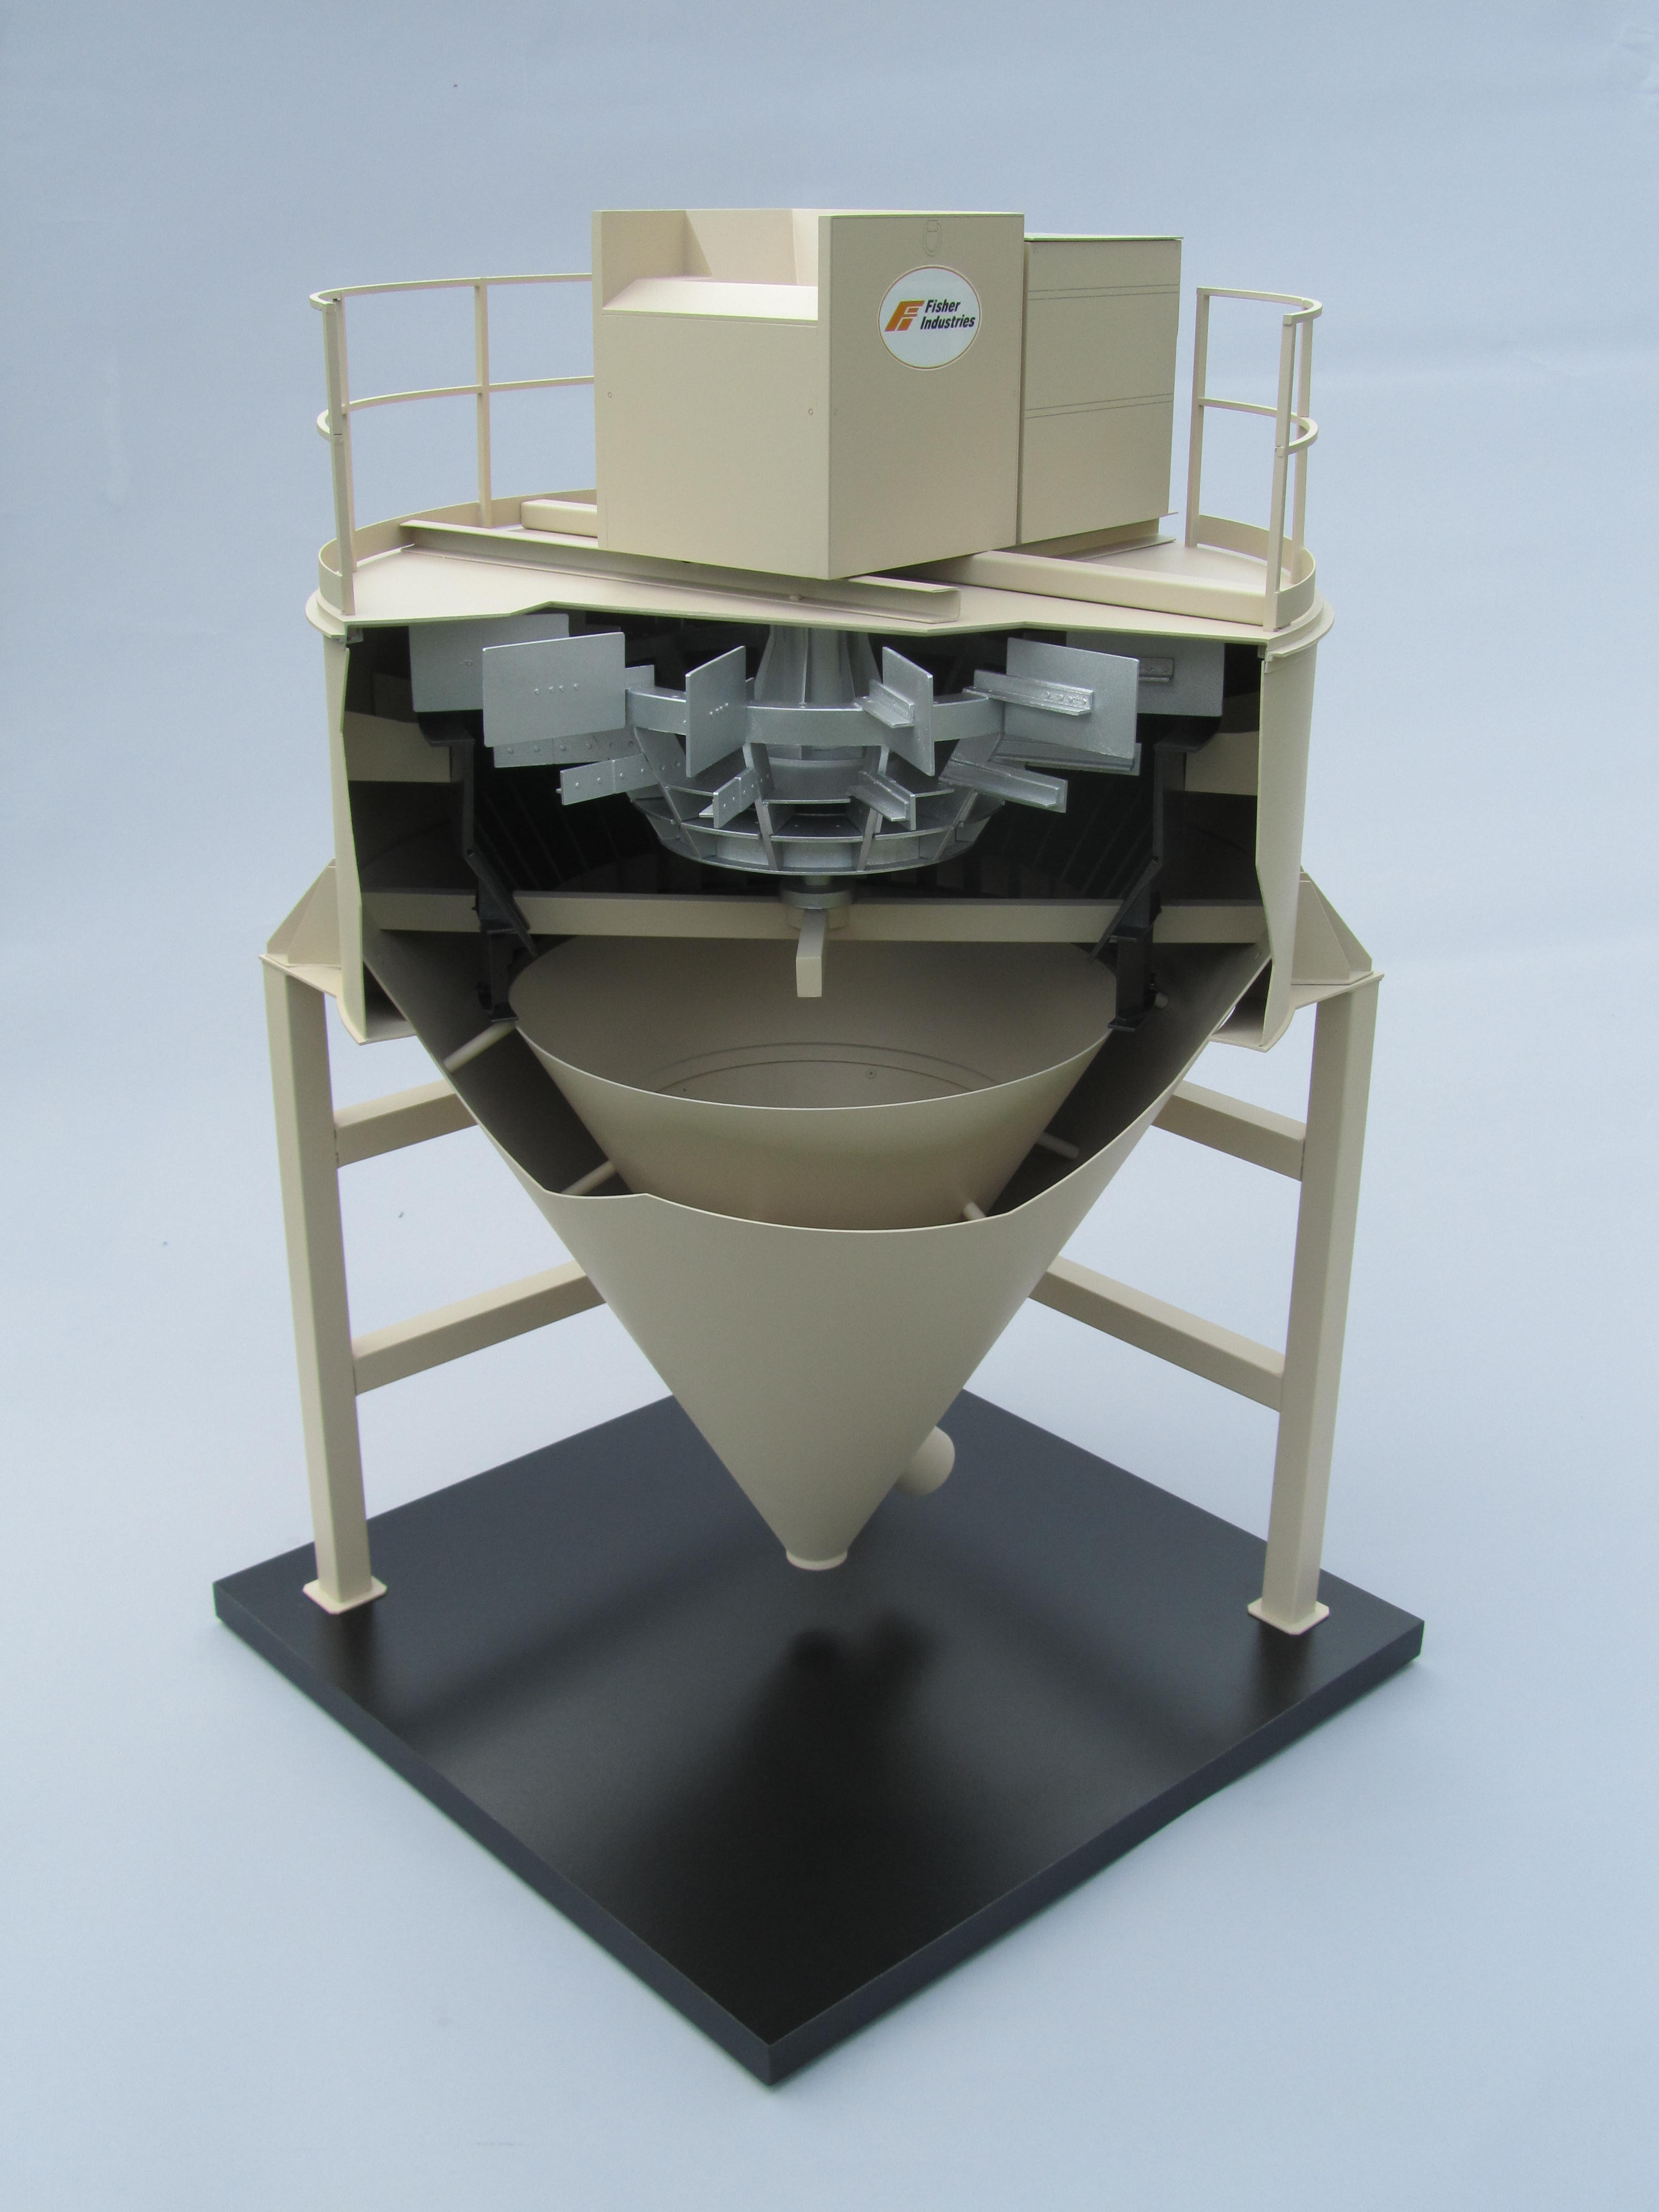 Working Model of an Air Separator